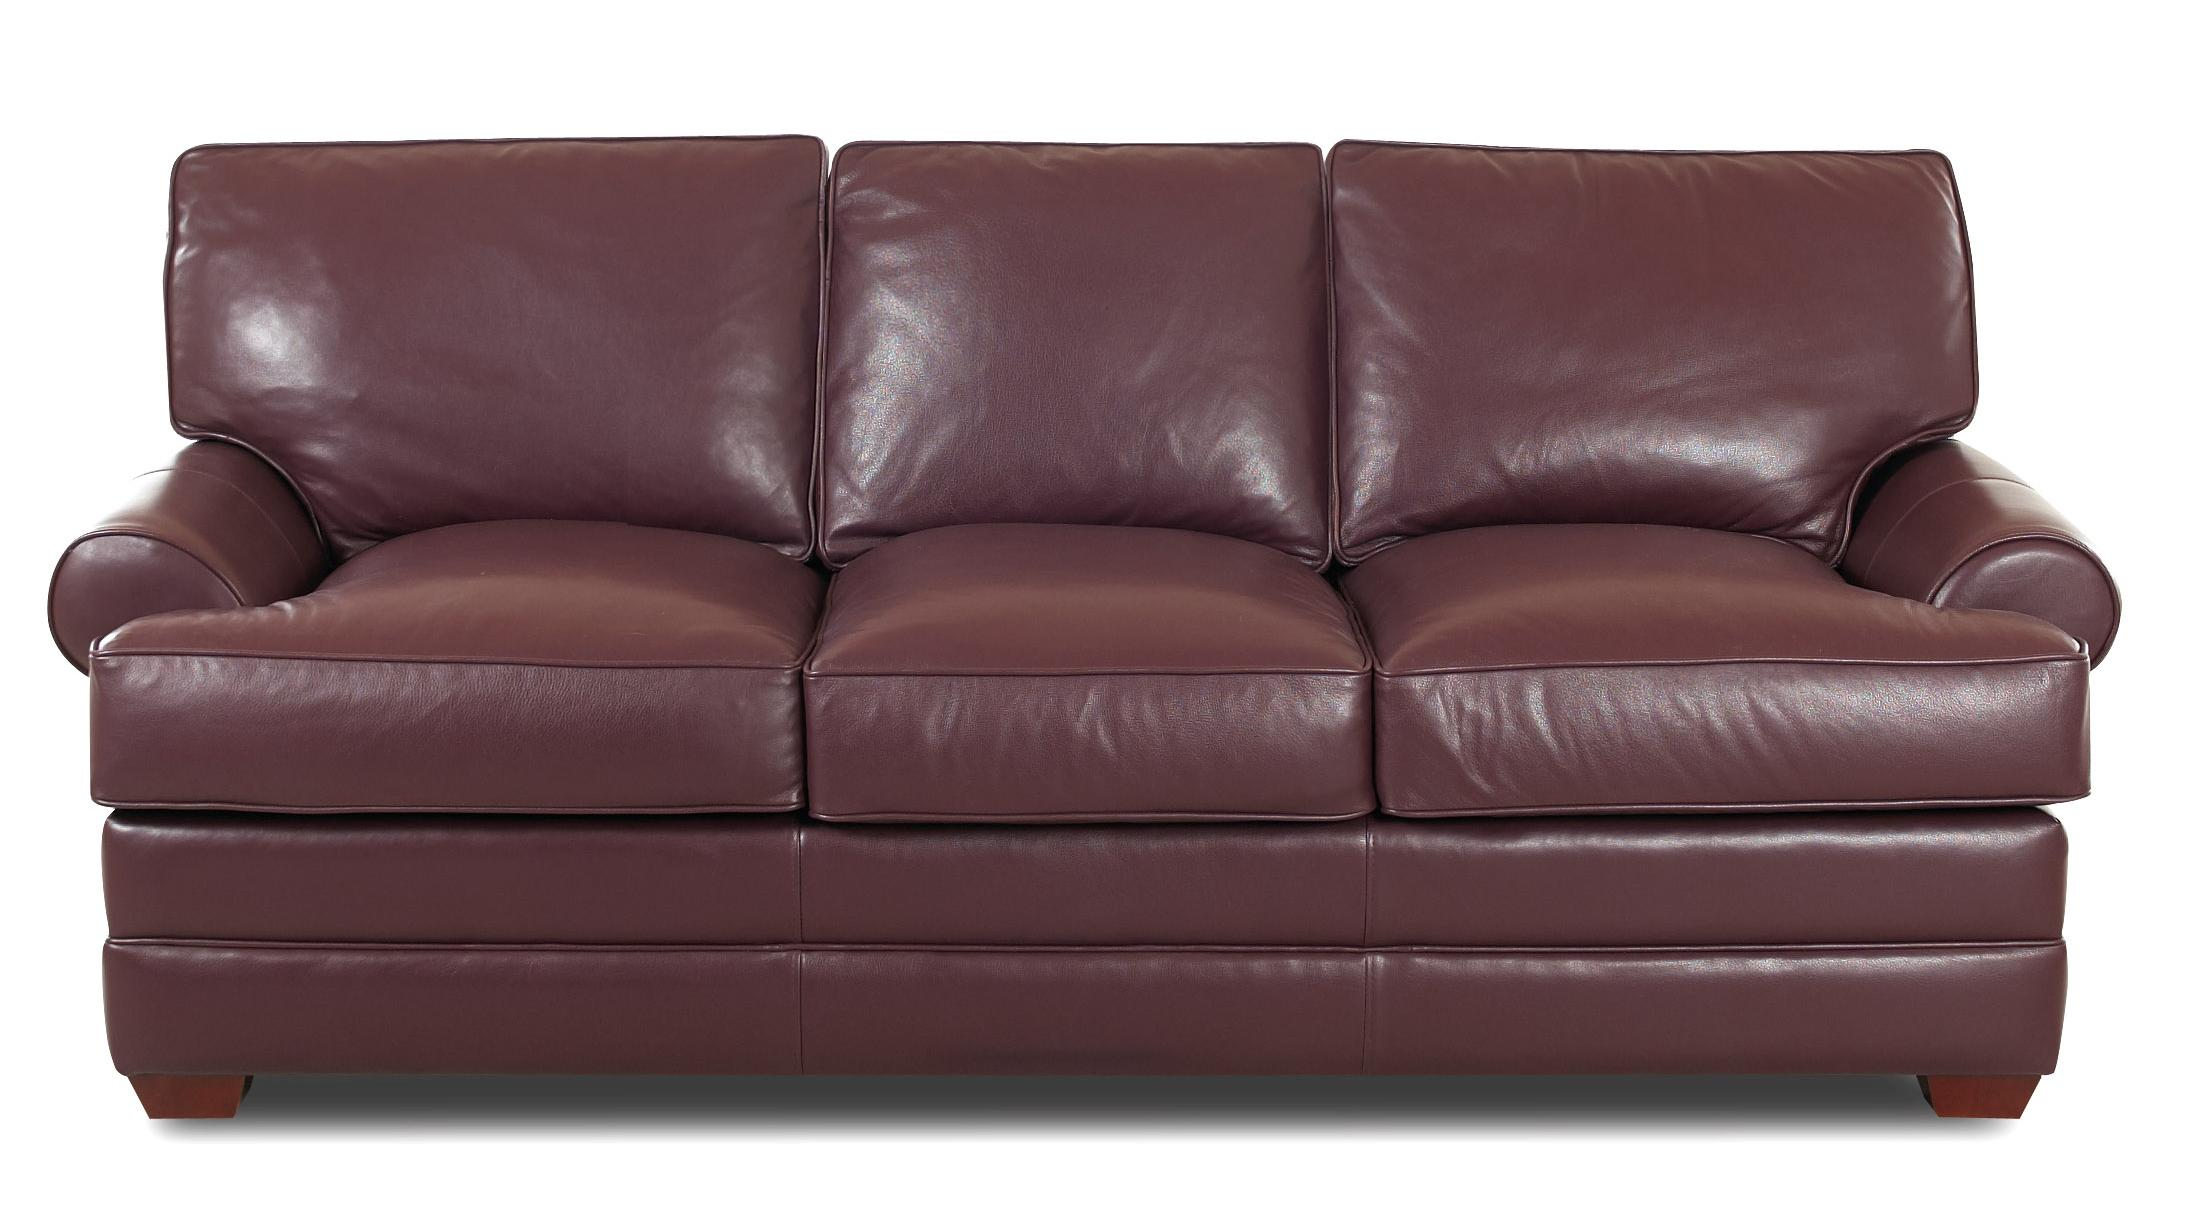 Troupe Sofa by Klaussner at Van Hill Furniture